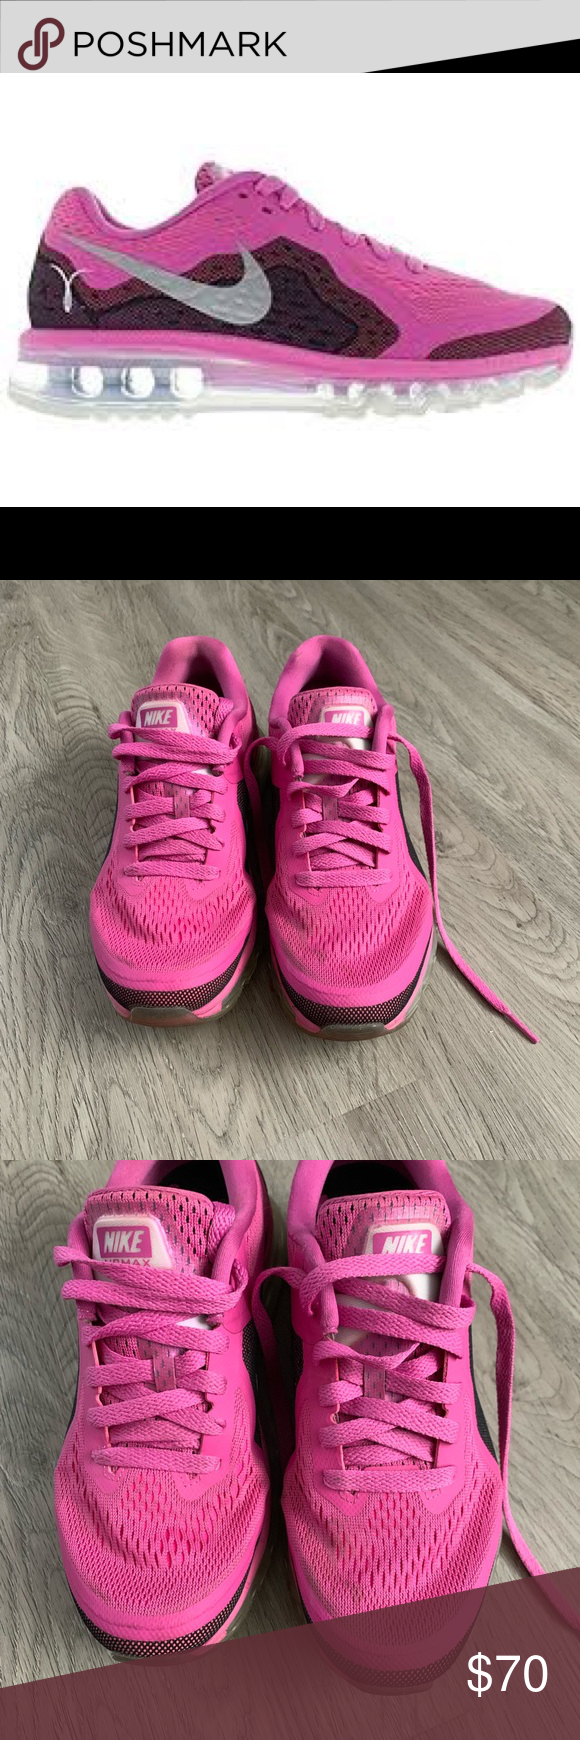 best sneakers 95444 e91e3 Nike Air Max 2014 Breast Cancer Awareness - 7.5 Women s Nike Shoes 7.5  Barely Worn - 4x Max! Very Comfortable Look brand new - little dirty on  left shoe top ...